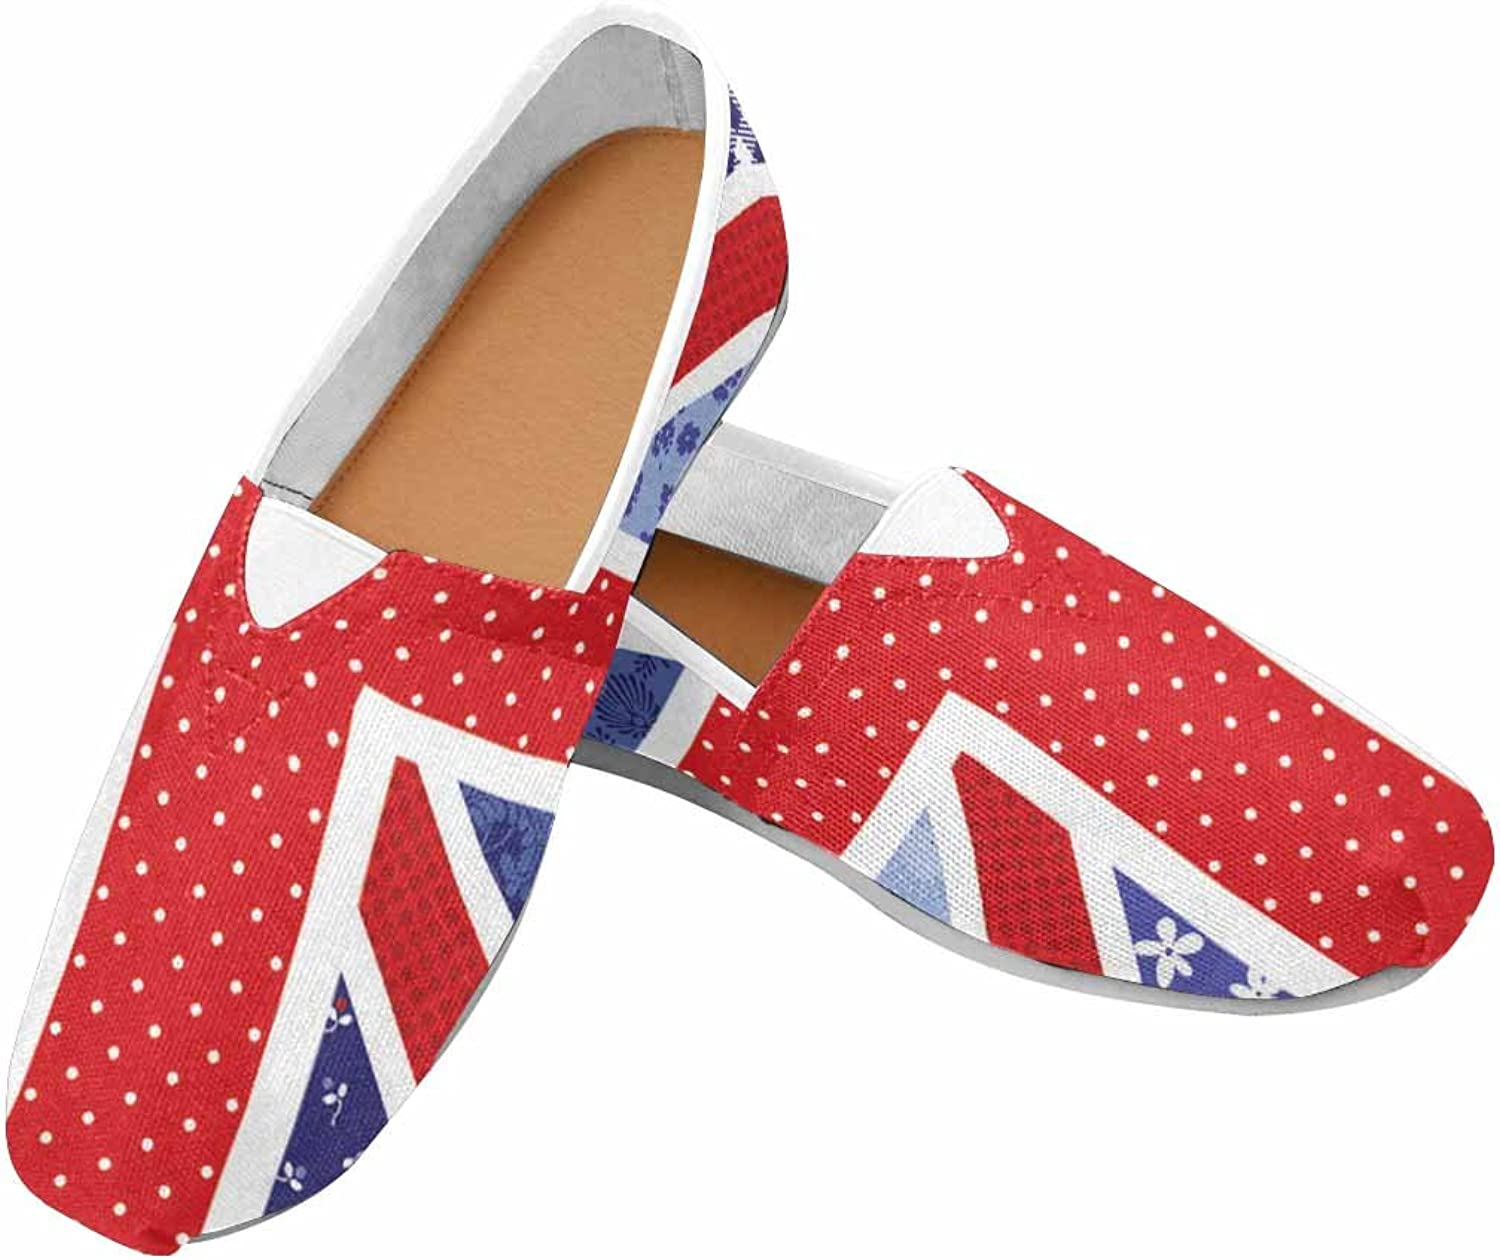 Women Flat Canvas shoes with Padded Insole